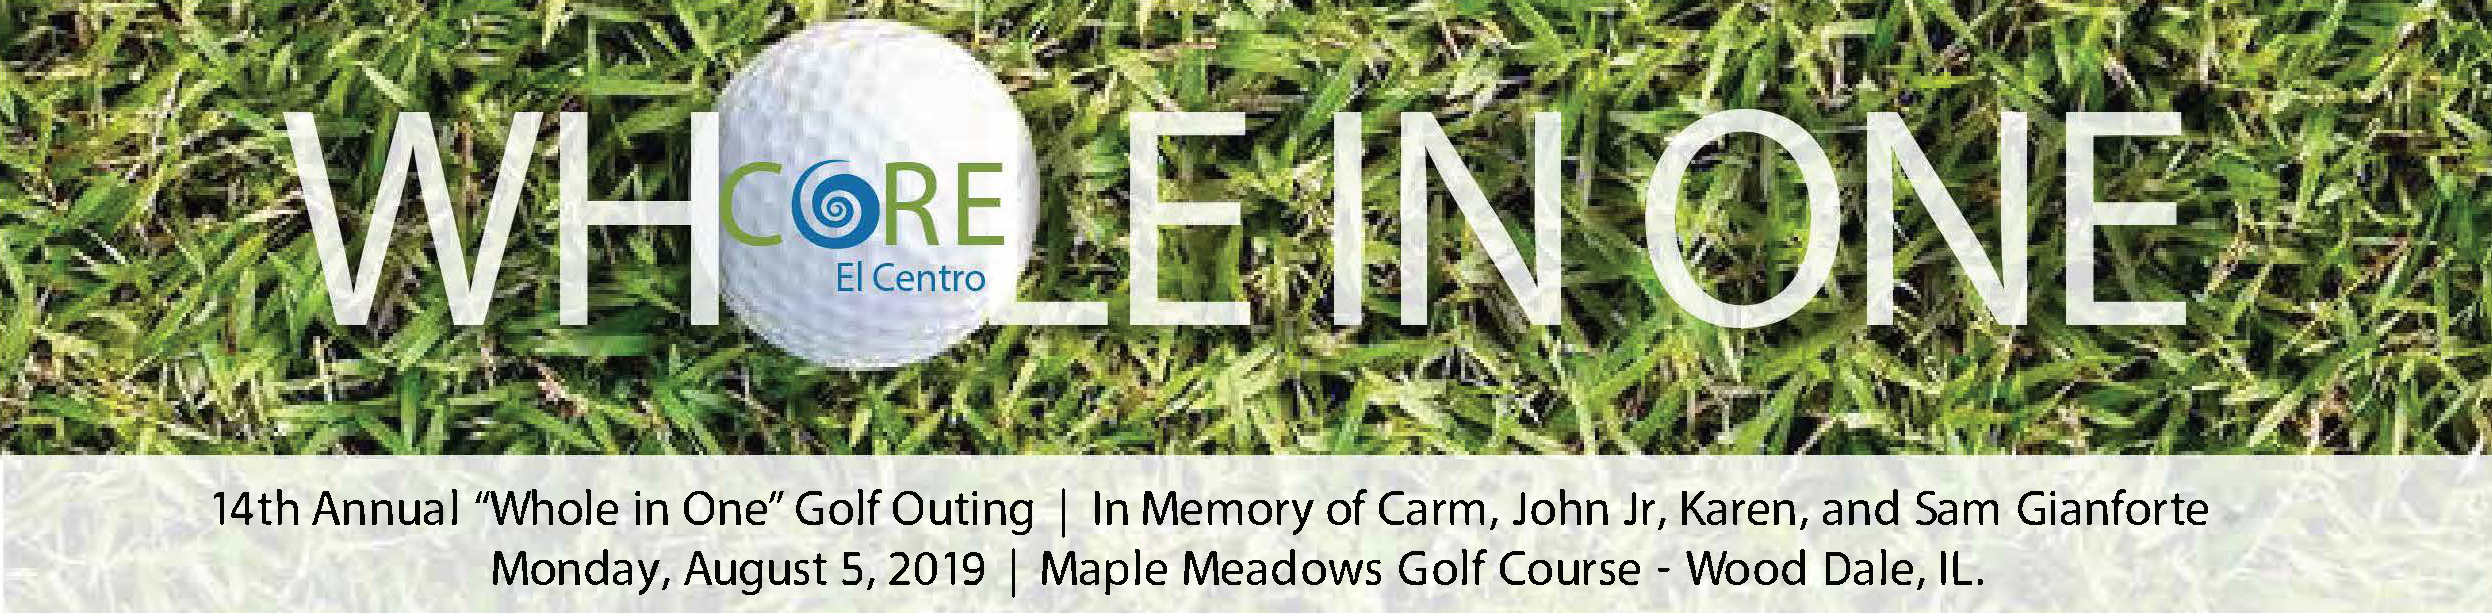 "Thank you to all who golfed, volunteered, donated, or supported CORE El Centro's Thriving with Cancer Program at the ""Whole In One"" Golf Outing!"